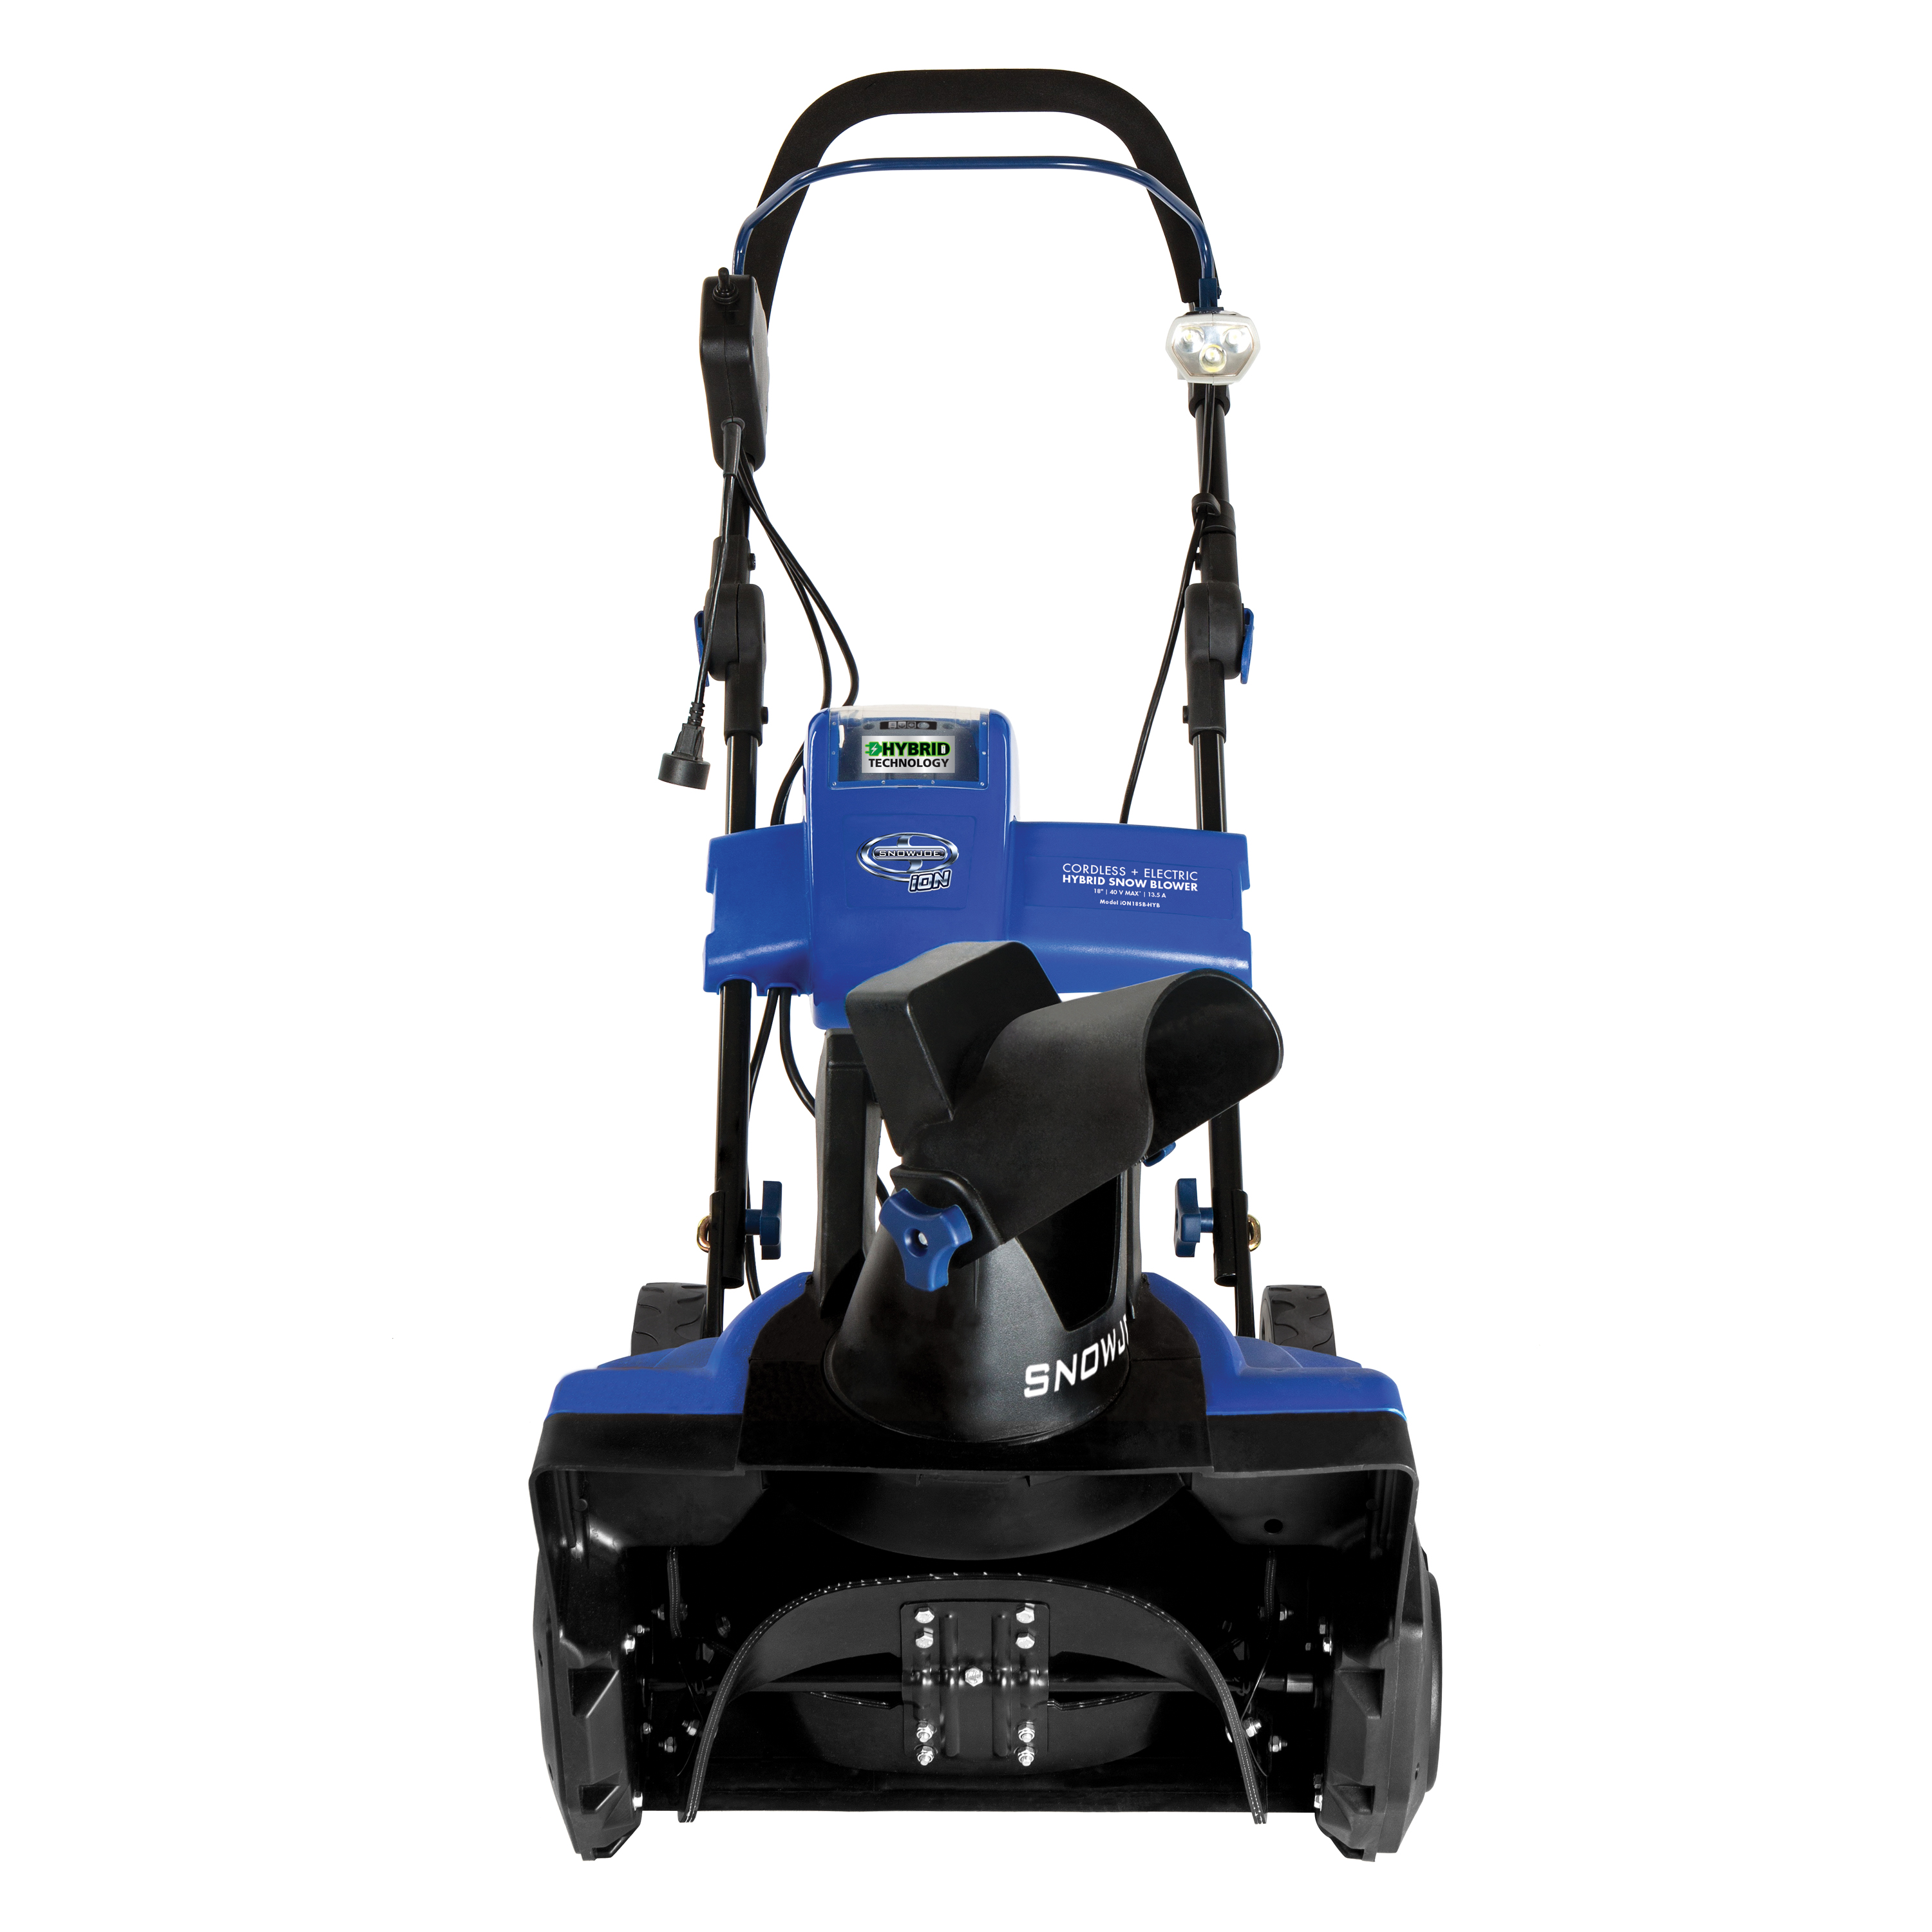 Snow Joe iON18SB-HYB-RM Hybrid Single Stage Snow Blower | 18-Inch · 40 Volt · 13.5 Amp | Brushless (Refurbished)